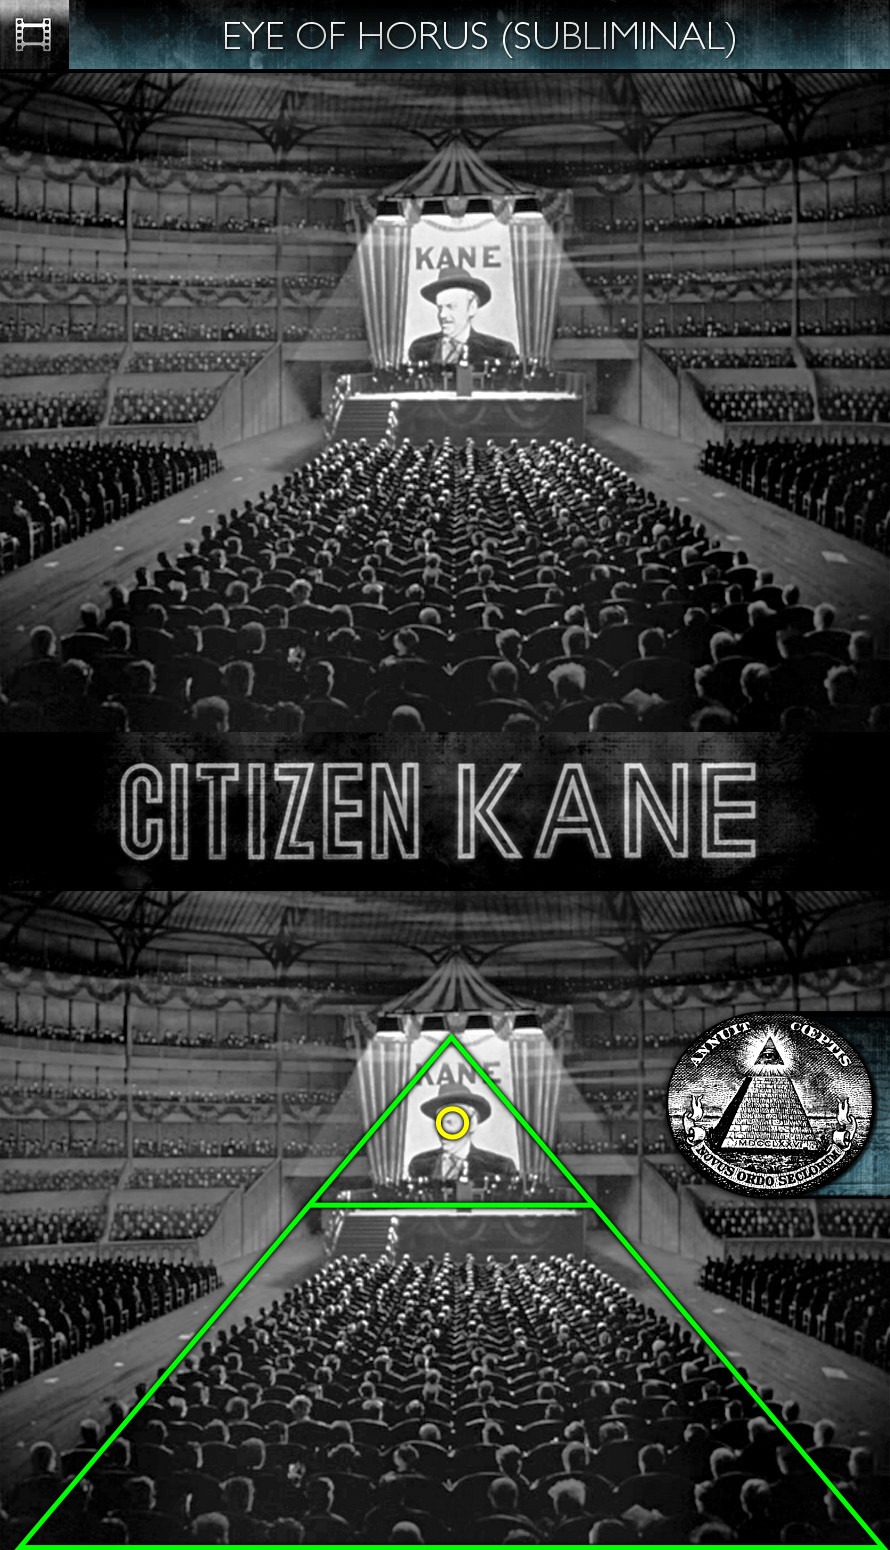 citizen kane isolation Hello, everybody your classic movie guys joe morella and frank segers back again with the answers to that citizen kane quizlet we ran on march 30 ok, now we can determine just how much you really do know about this great classic that we cannot get enough of.